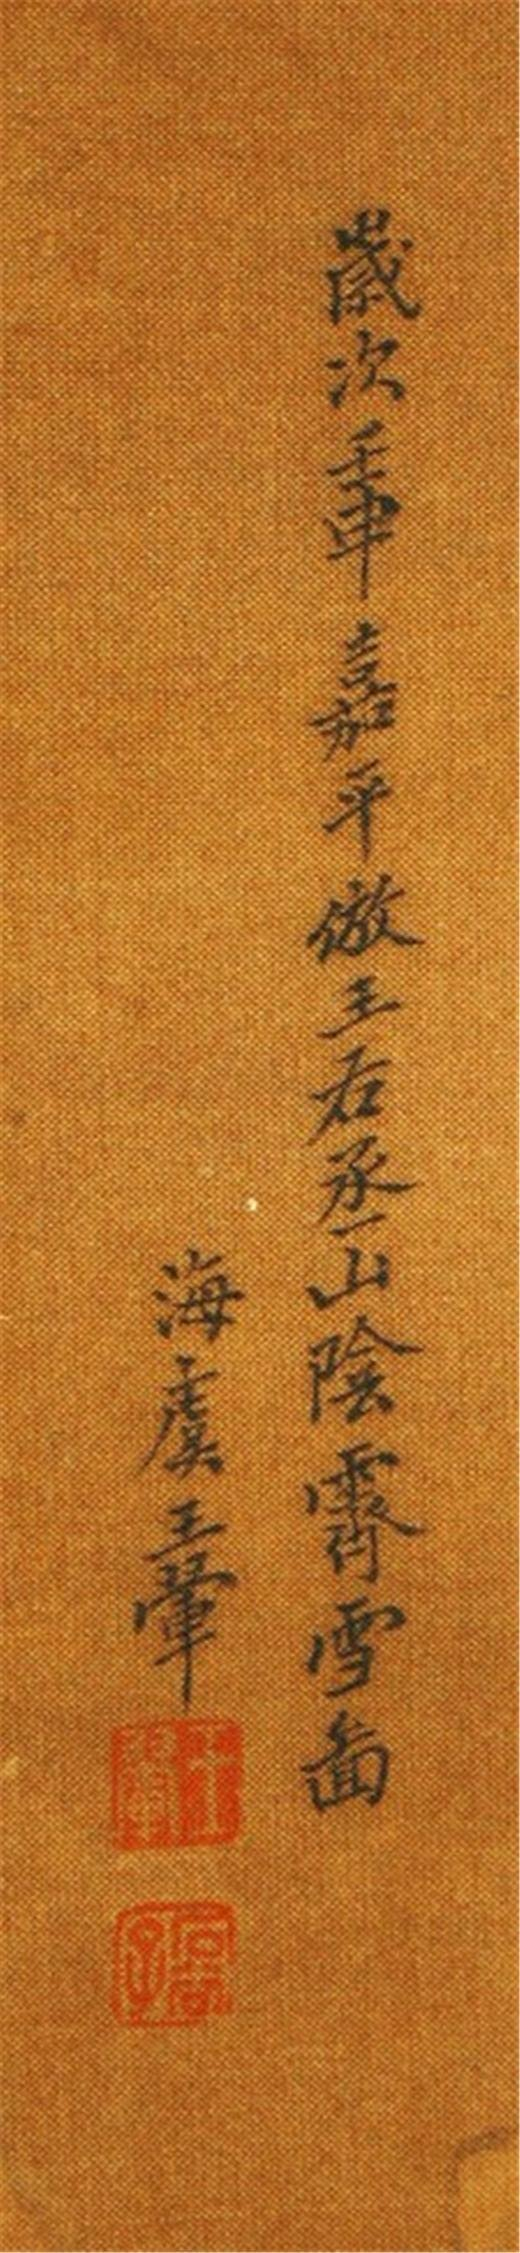 940: Chinese hanging scroll painting - 2